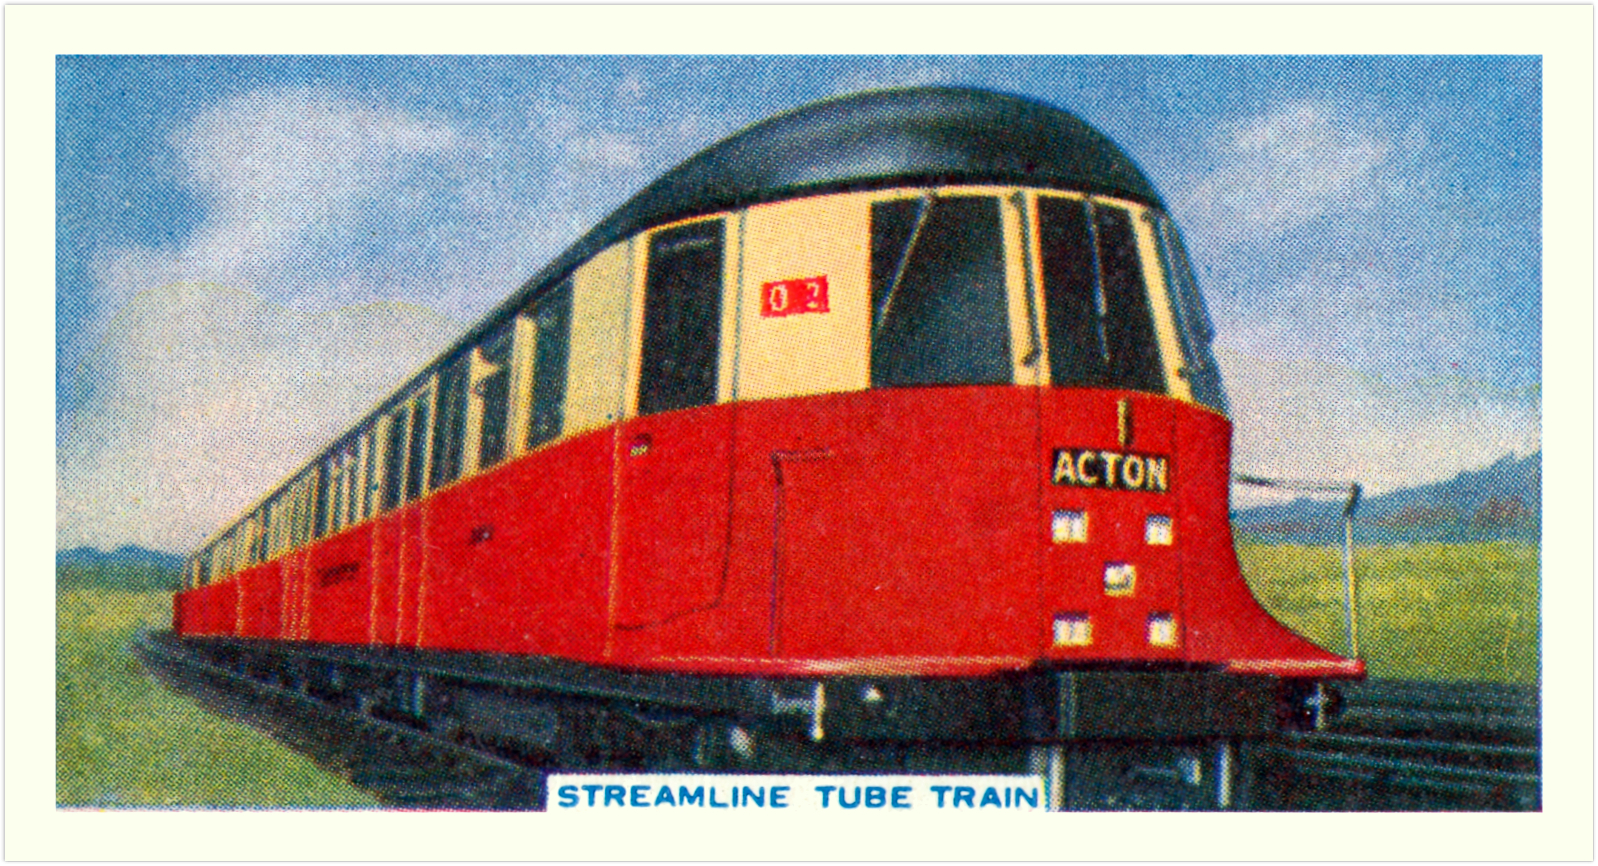 23 - That streamlined tube train!